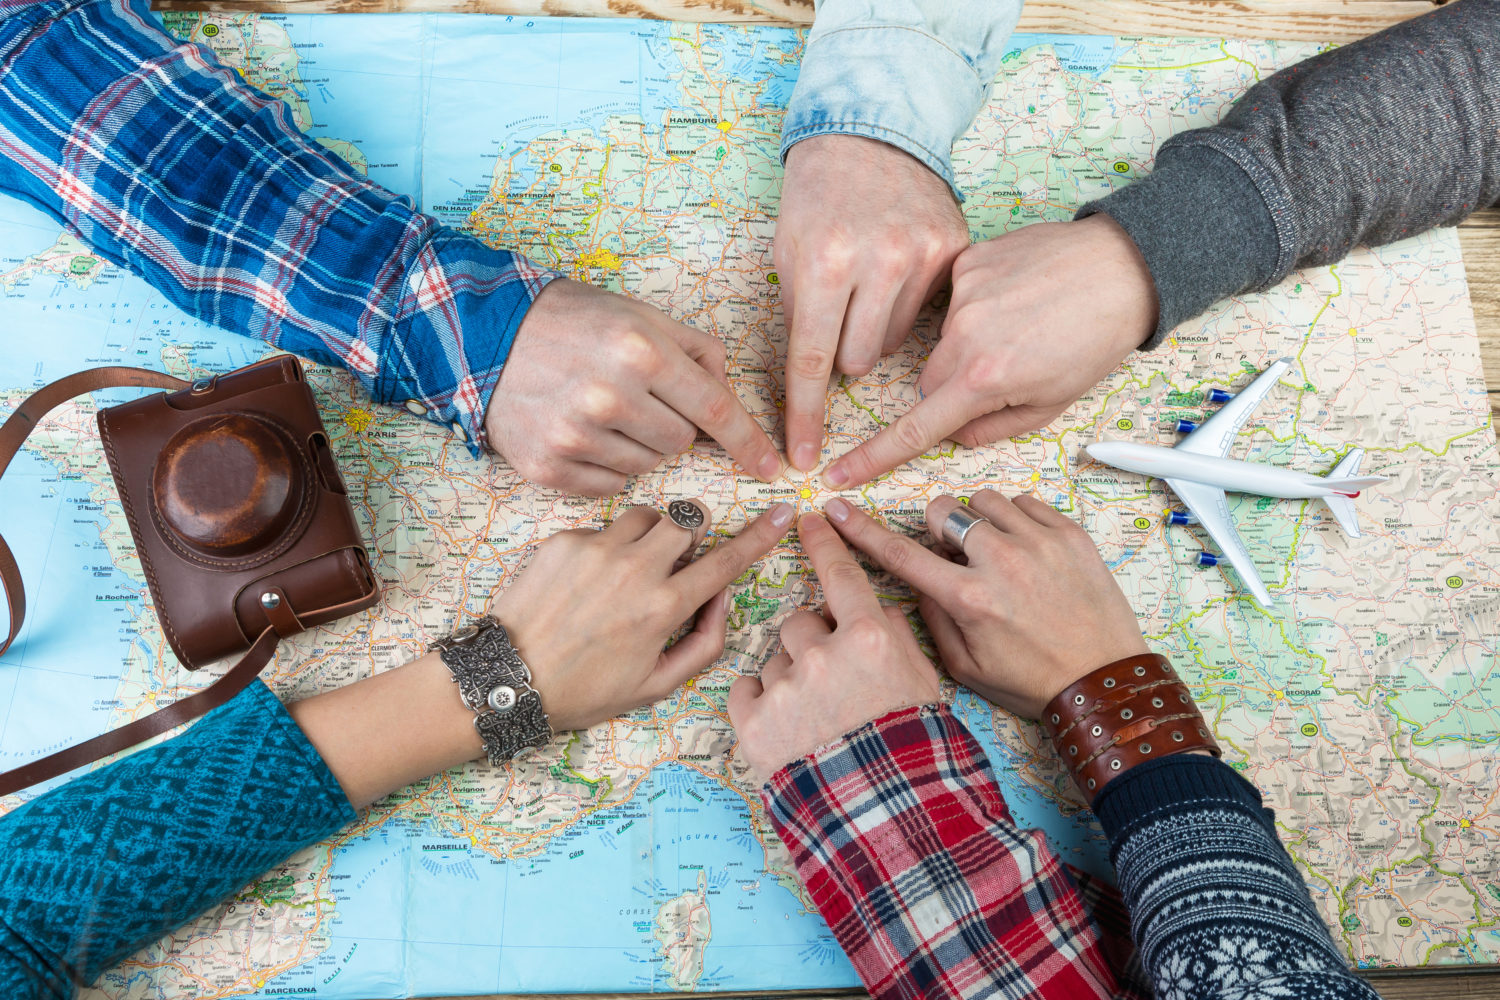 Six hands pointing at Munich with an airplane miniature and vintage camera case placed on the map of Europe